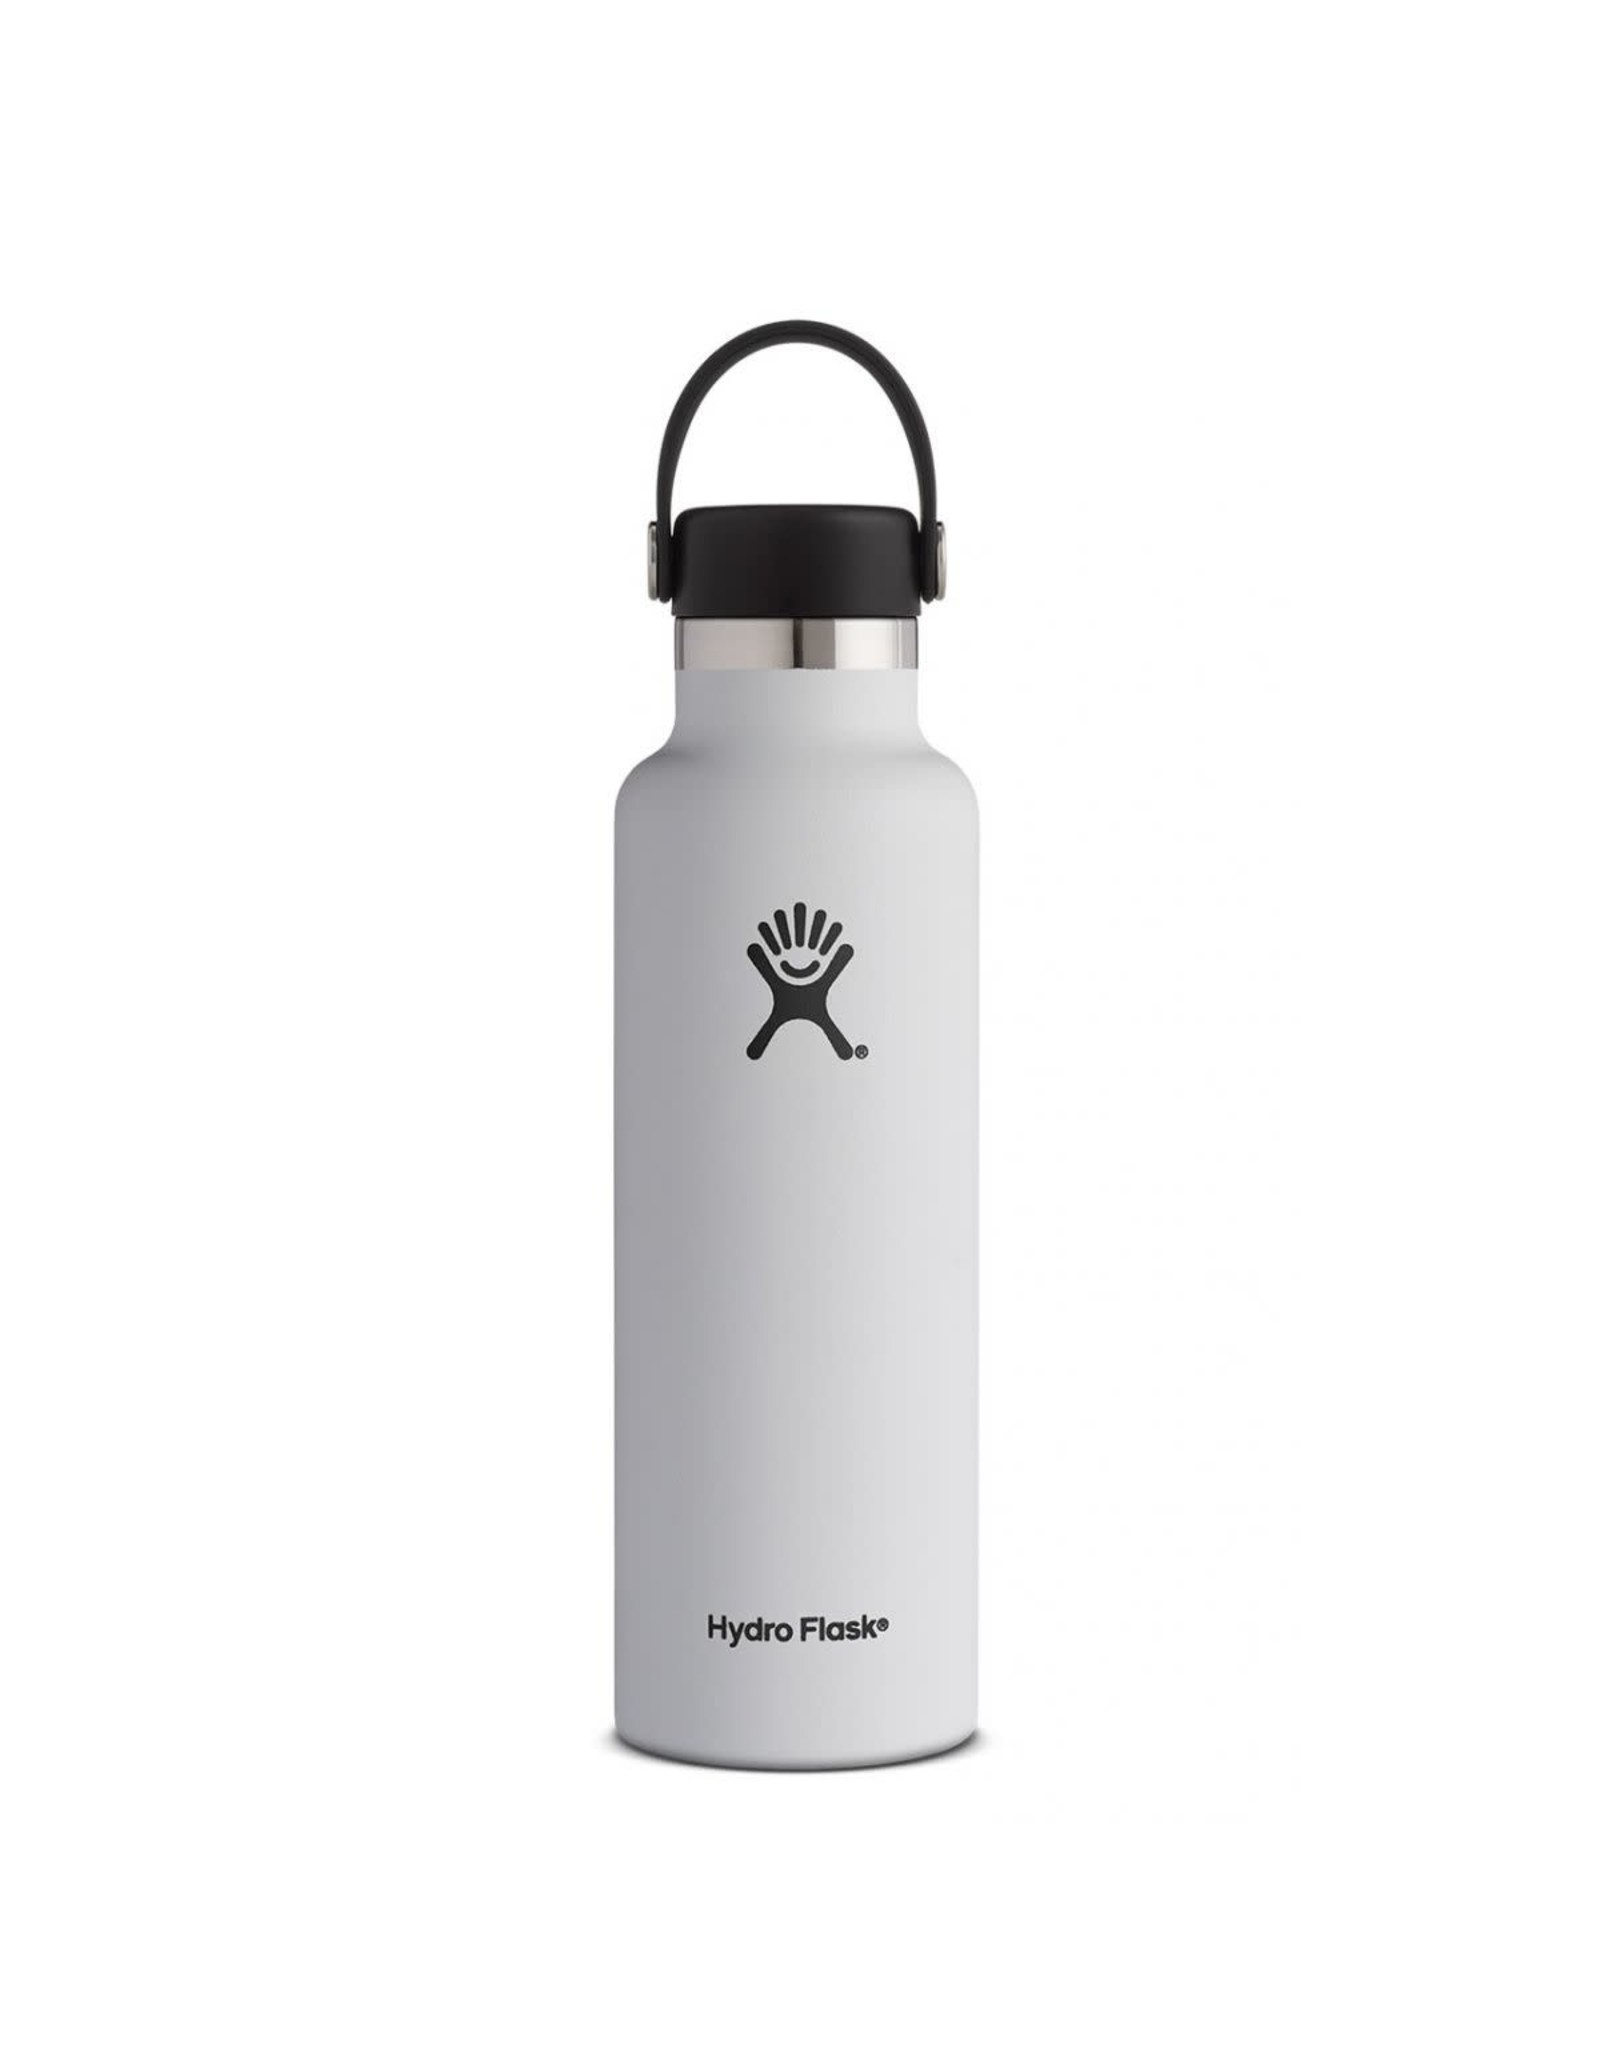 Hydro Flask Hydro Flask 21oz Standard Mouth White